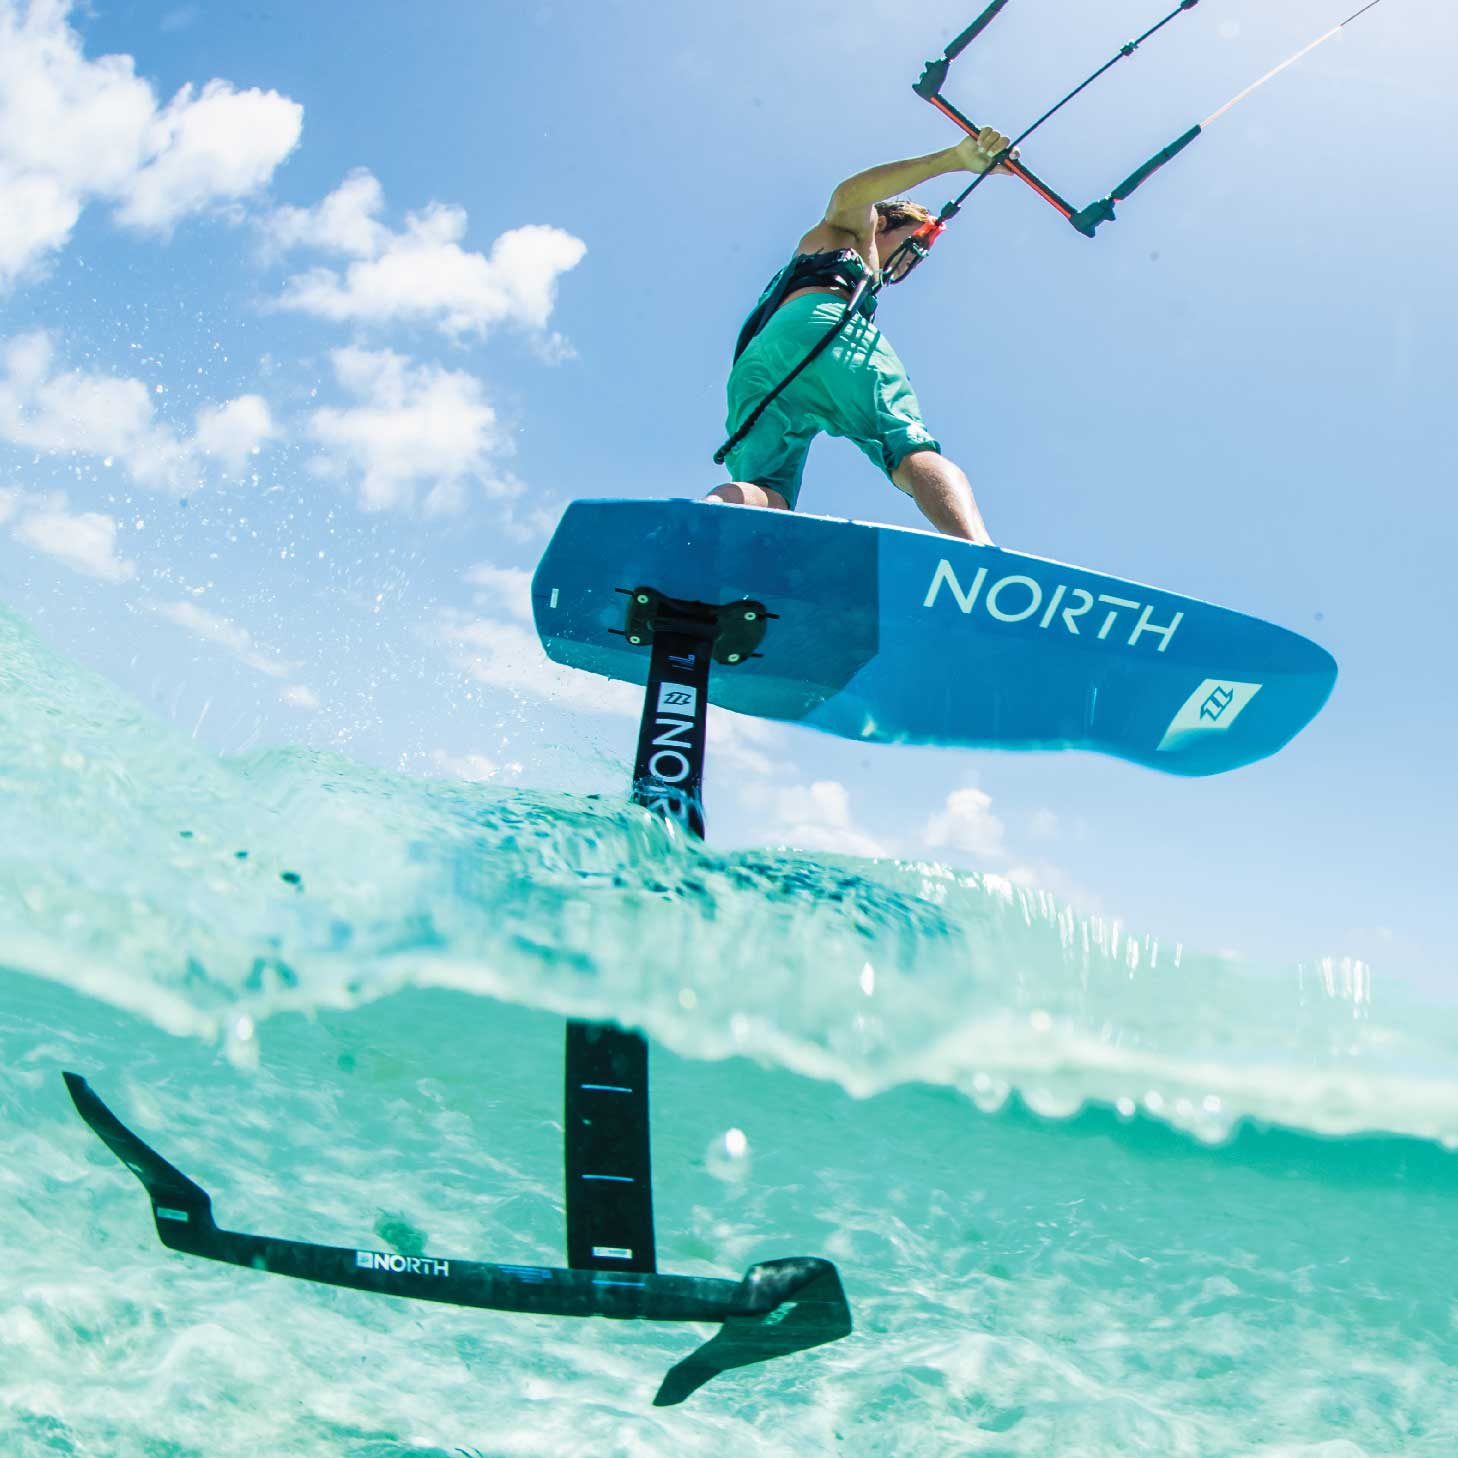 FREE Kitesurf or Foilboard Lessons | Action Sports WA